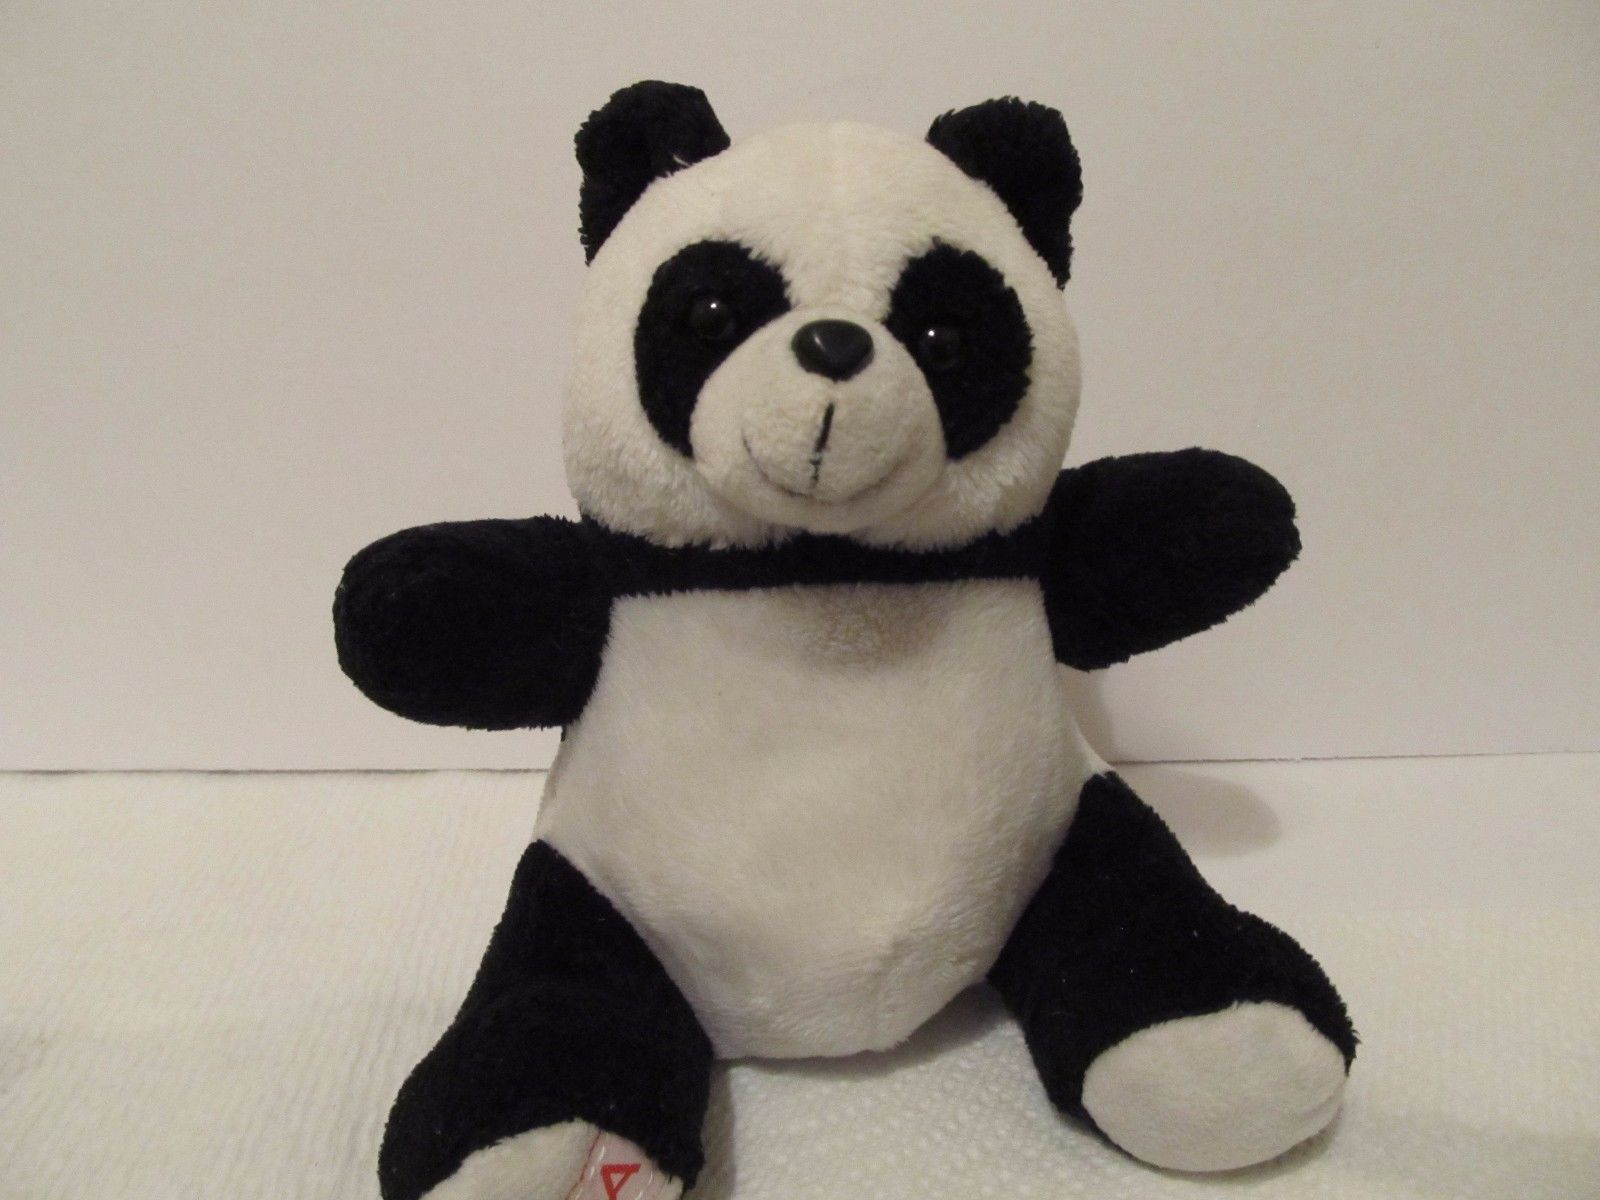 Panda Express Plush Toy Panda Fan Shop Panda Plush Toys